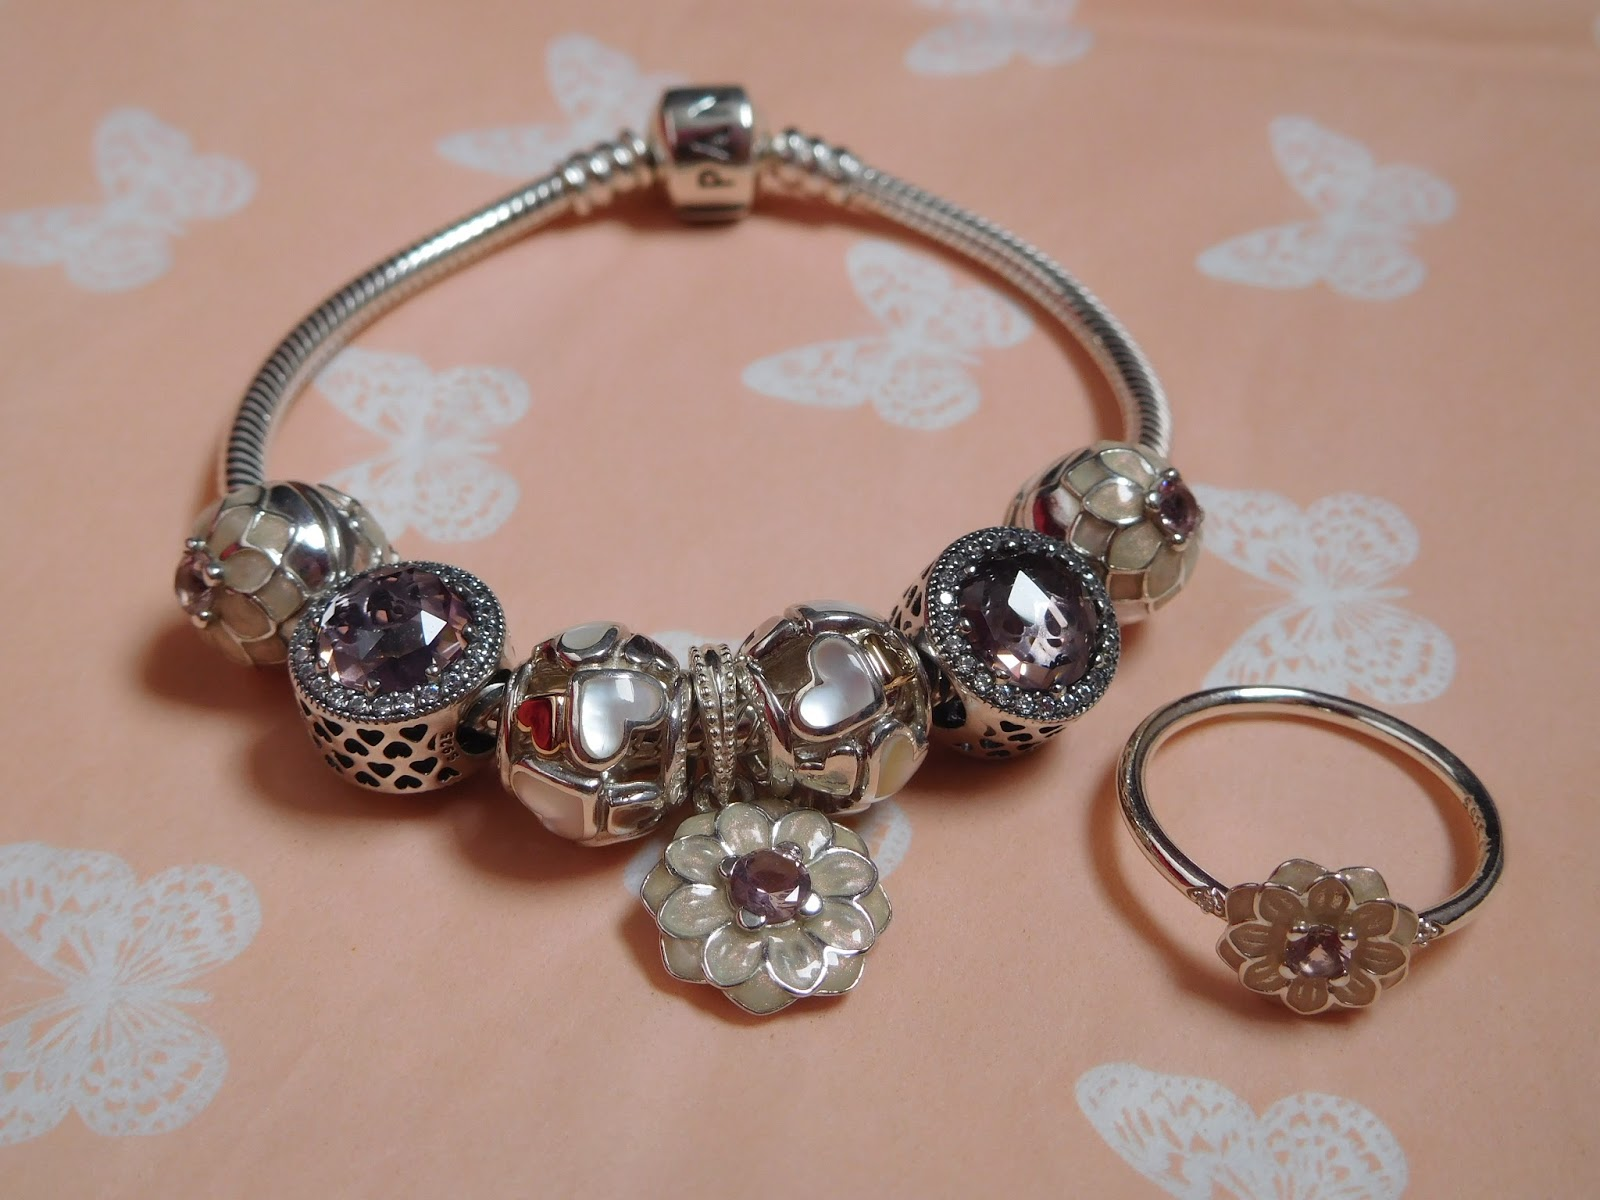 more art day review autumn open bracelet moments silver the of spring winter bangle valentines charms caps bangles logo summer pandora